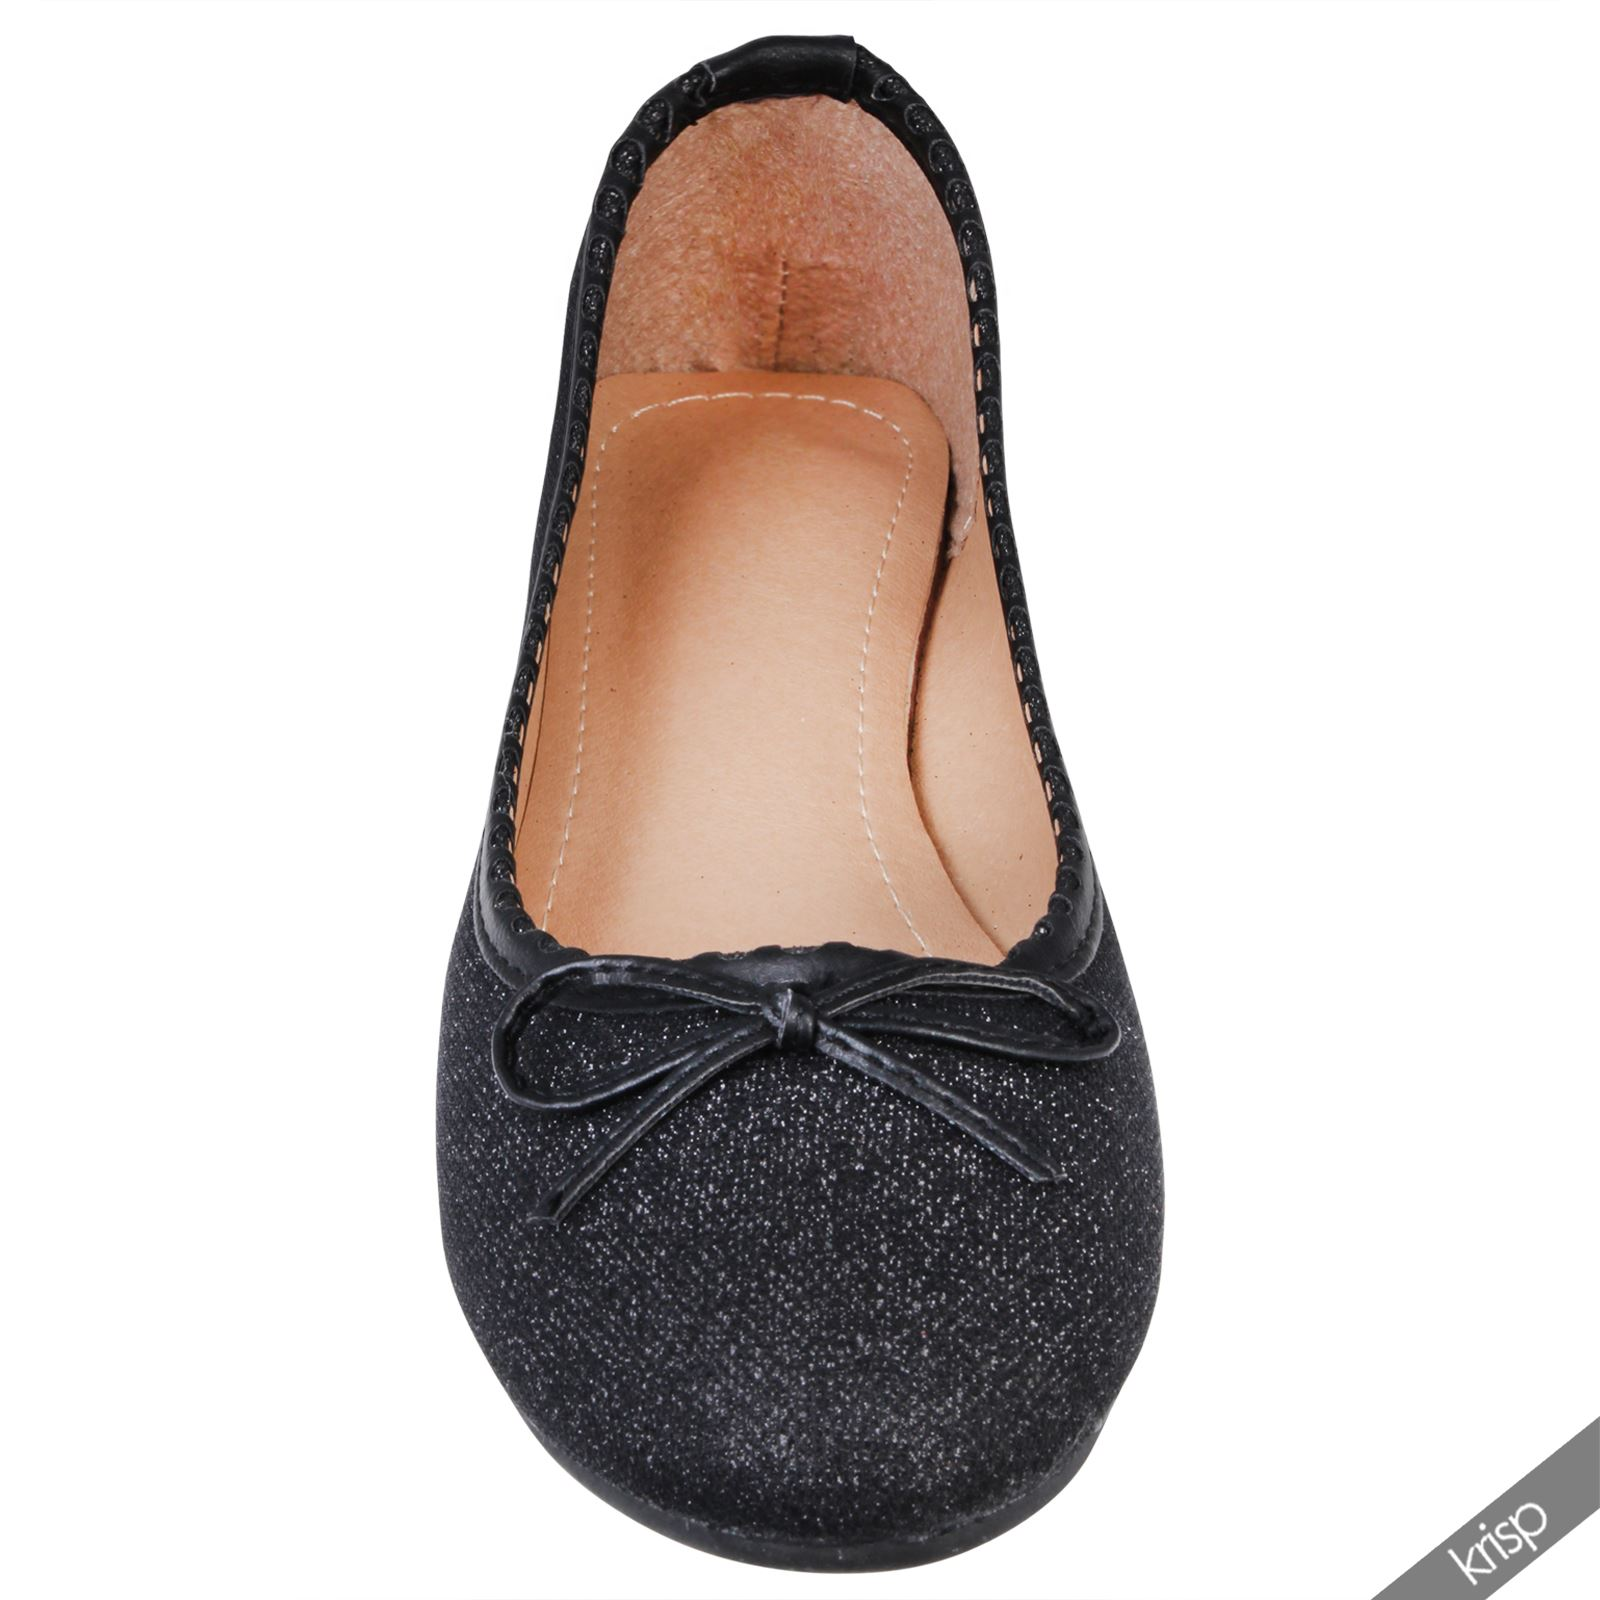 Save on Women's Ballet Flats. Trending price is based on prices over last 90 days. New Skechers Go Step Lite Enchanted Womens Comfort Ballet Flats. AU $ Women's Solid Cross Lace Up Flats Shoes Pointed Toe Ballet Casual Strappy Shoes. AU $ Was: Previous price AU $